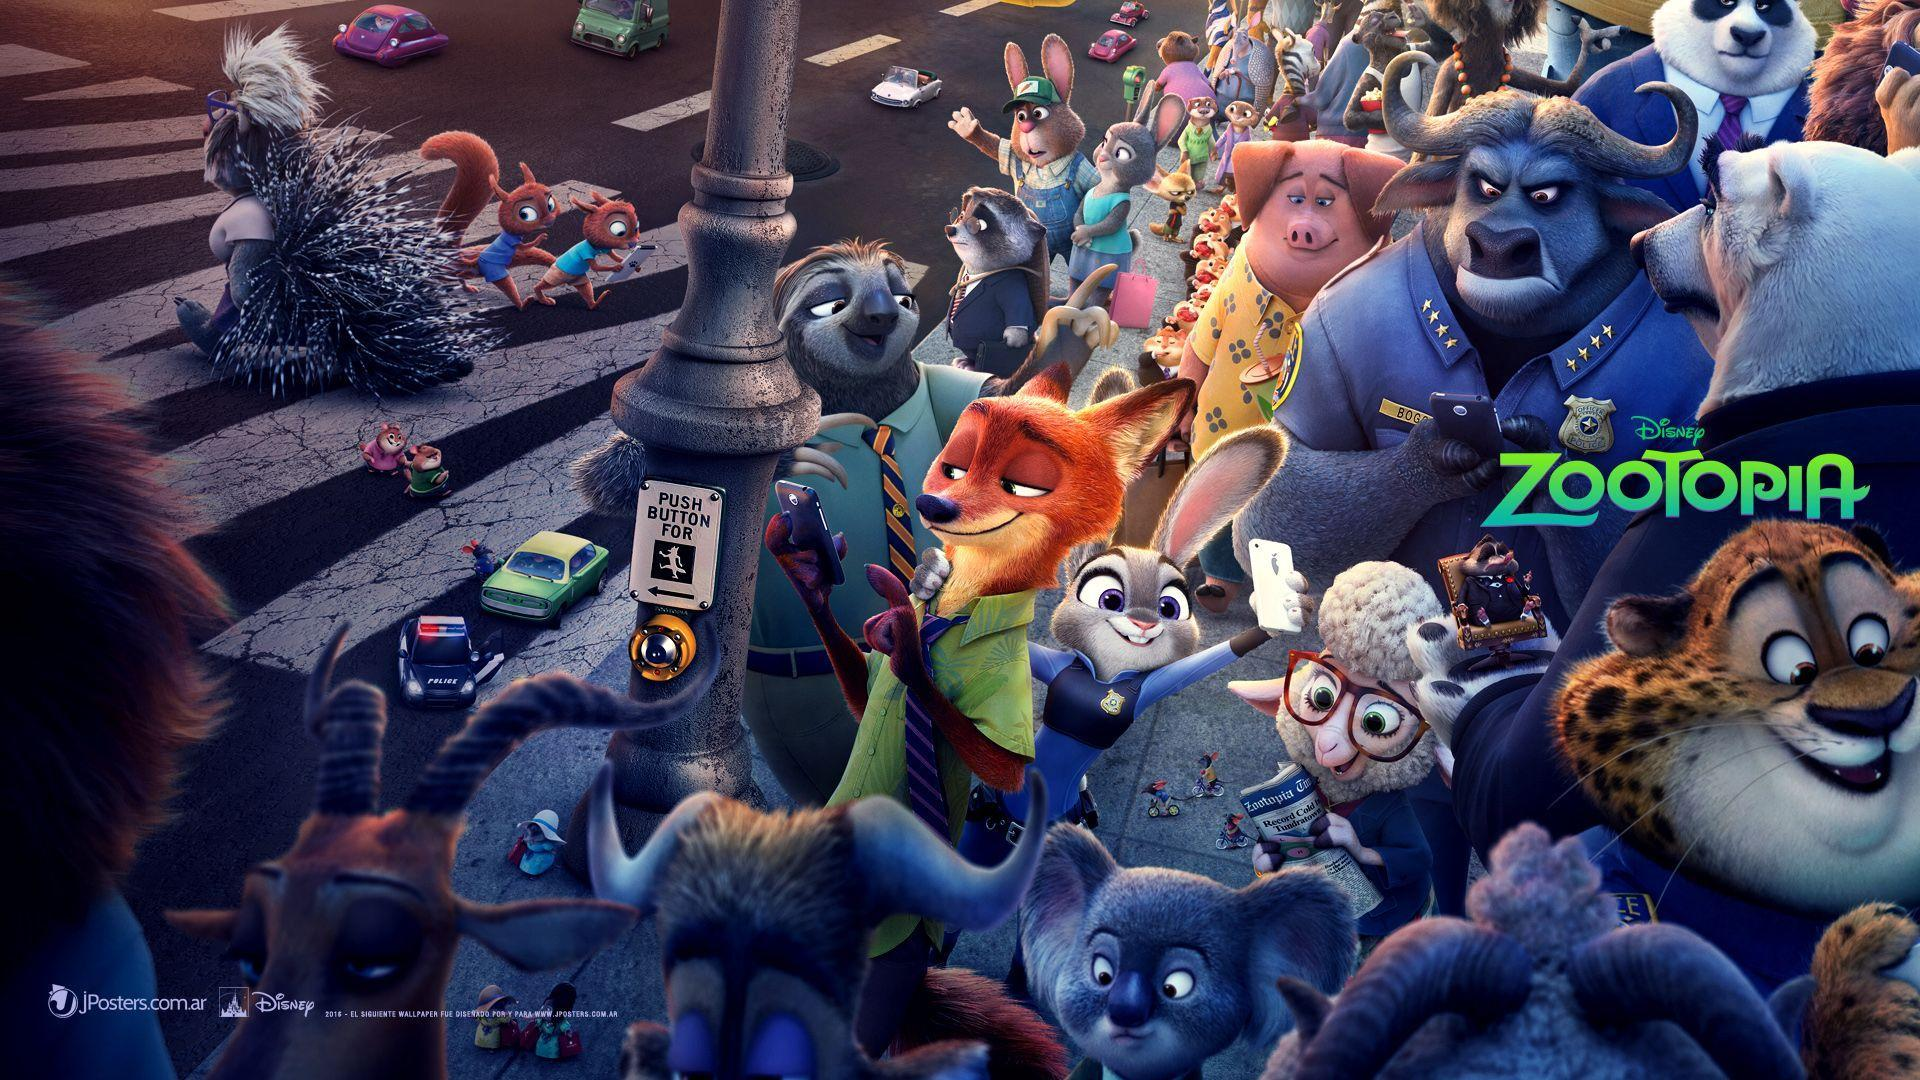 Zootopia images free download -